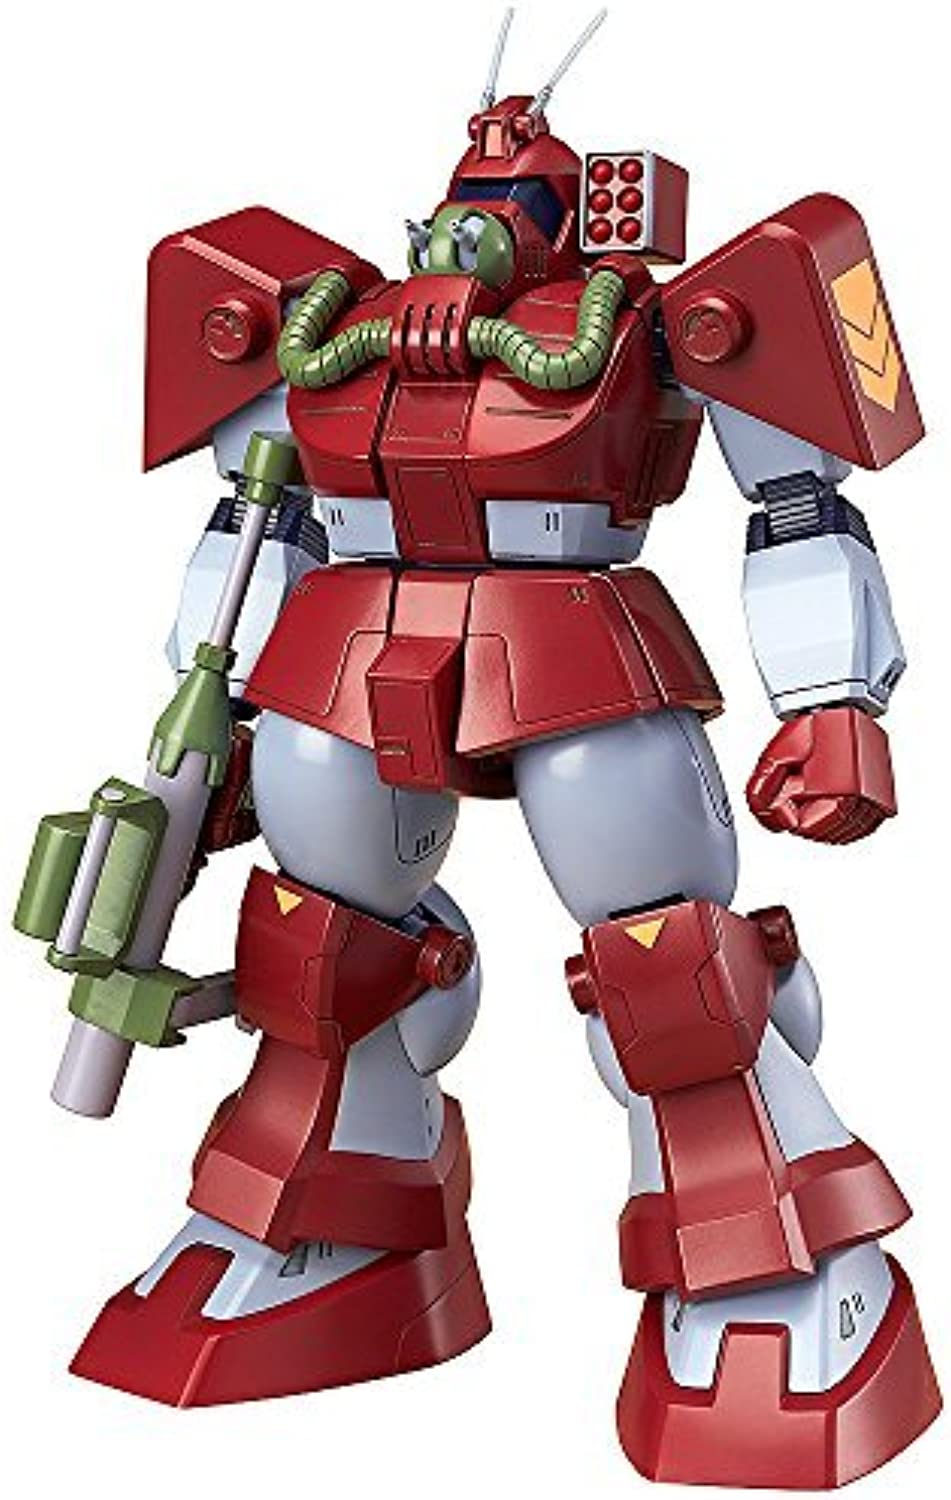 Max Factory Combat Armors Max 03  Abitate T10B Blockhead Series Figure (1 72 Scale) by Max Factory